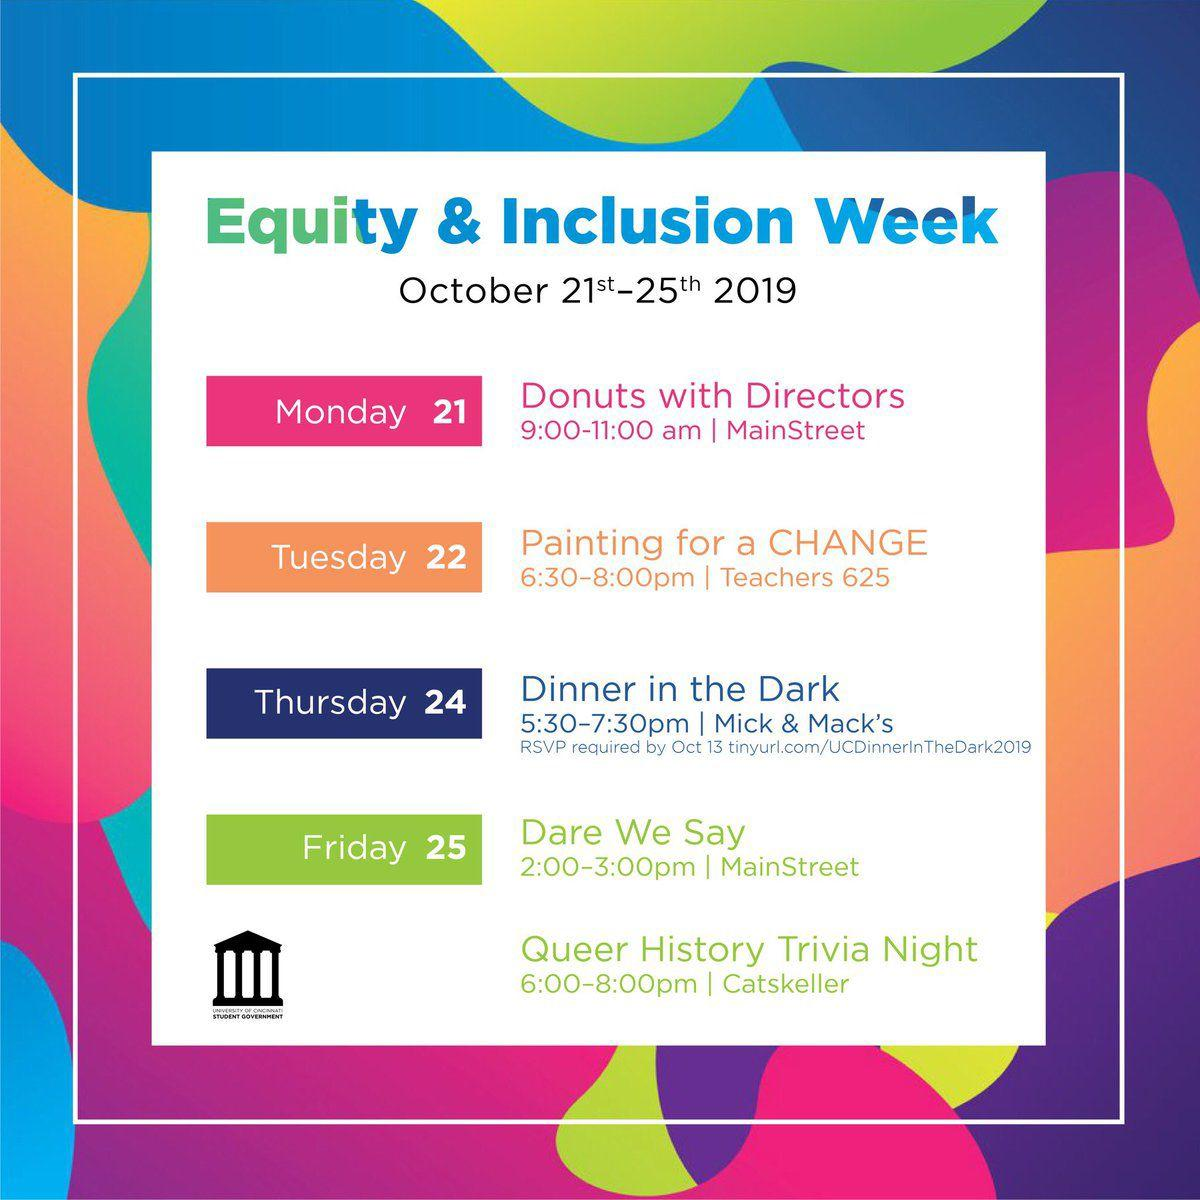 Equity & Inclusion Week